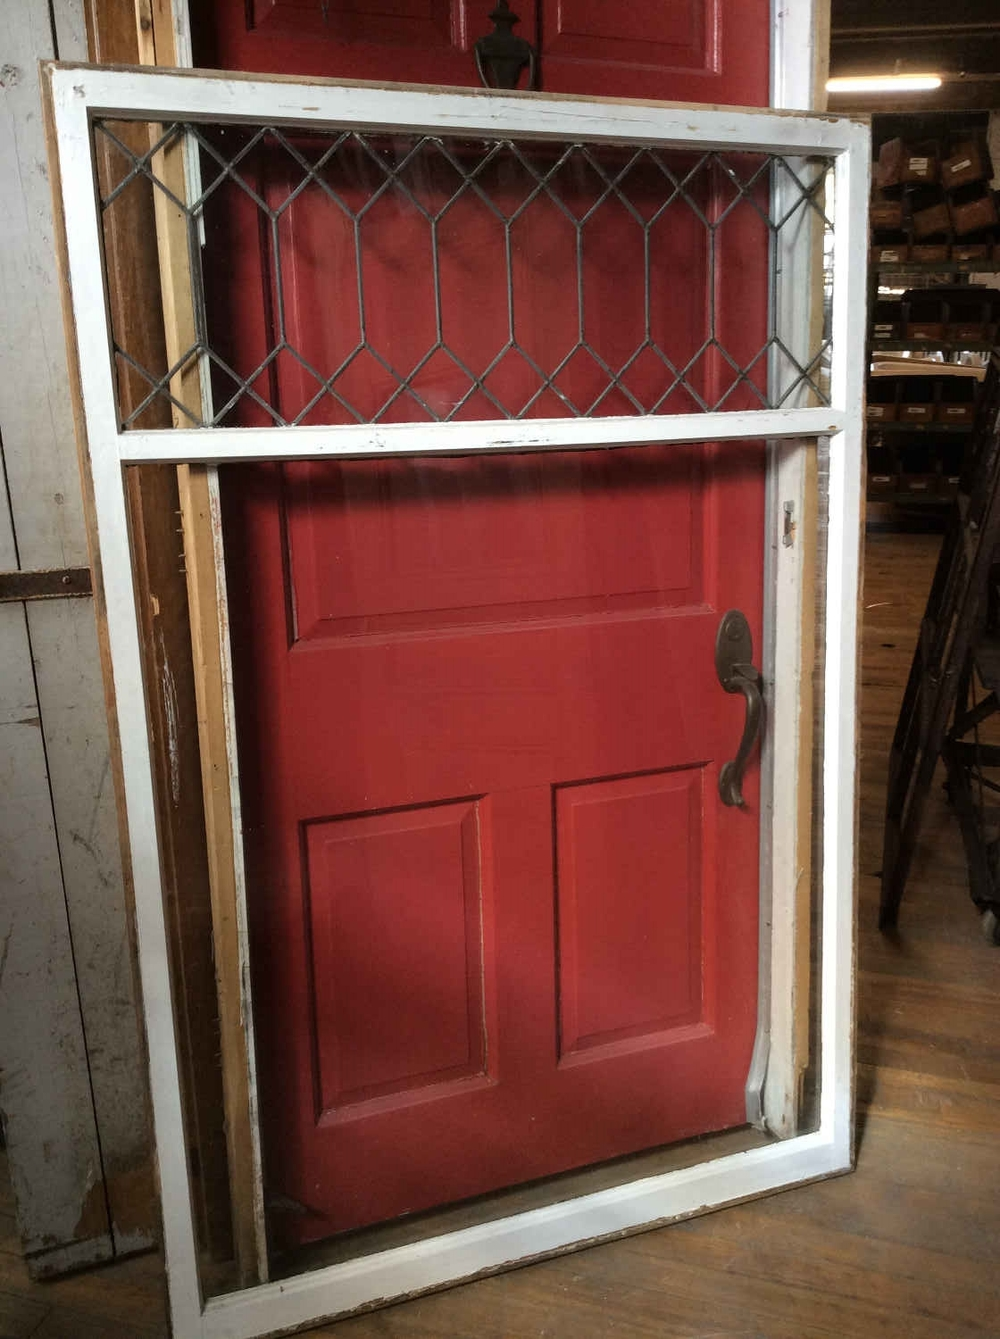 Picture Window with Geometric Leaded Glass